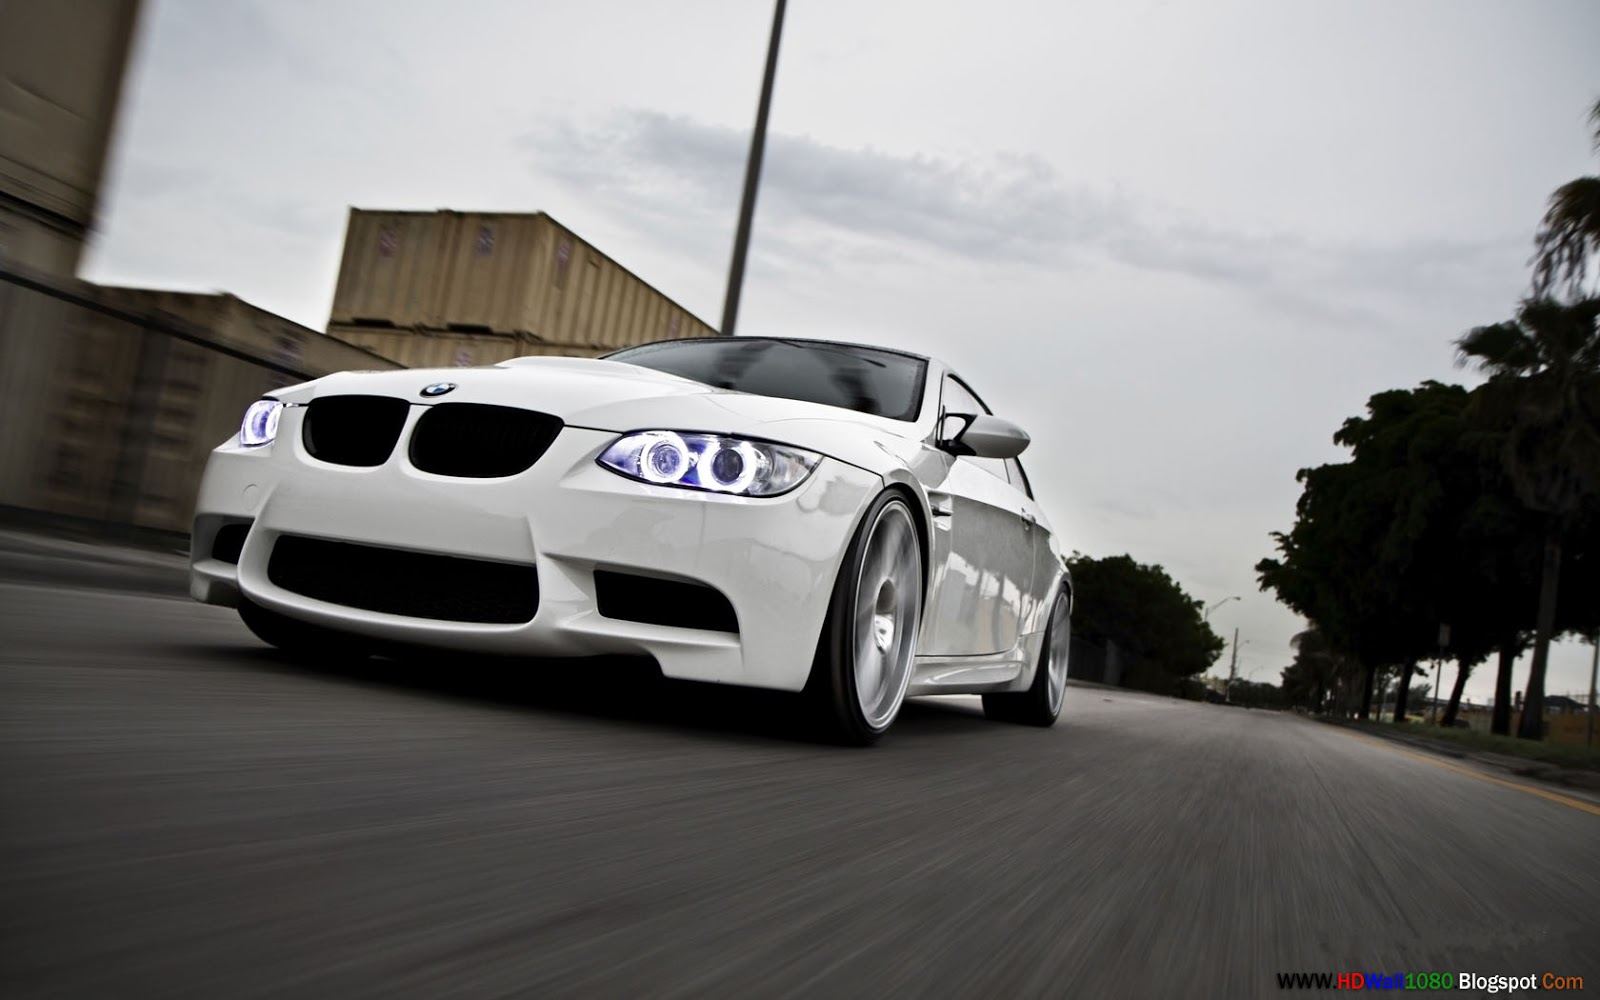 Hd Pc Desktop Wallpapers Bmw Cars In White Colour Front